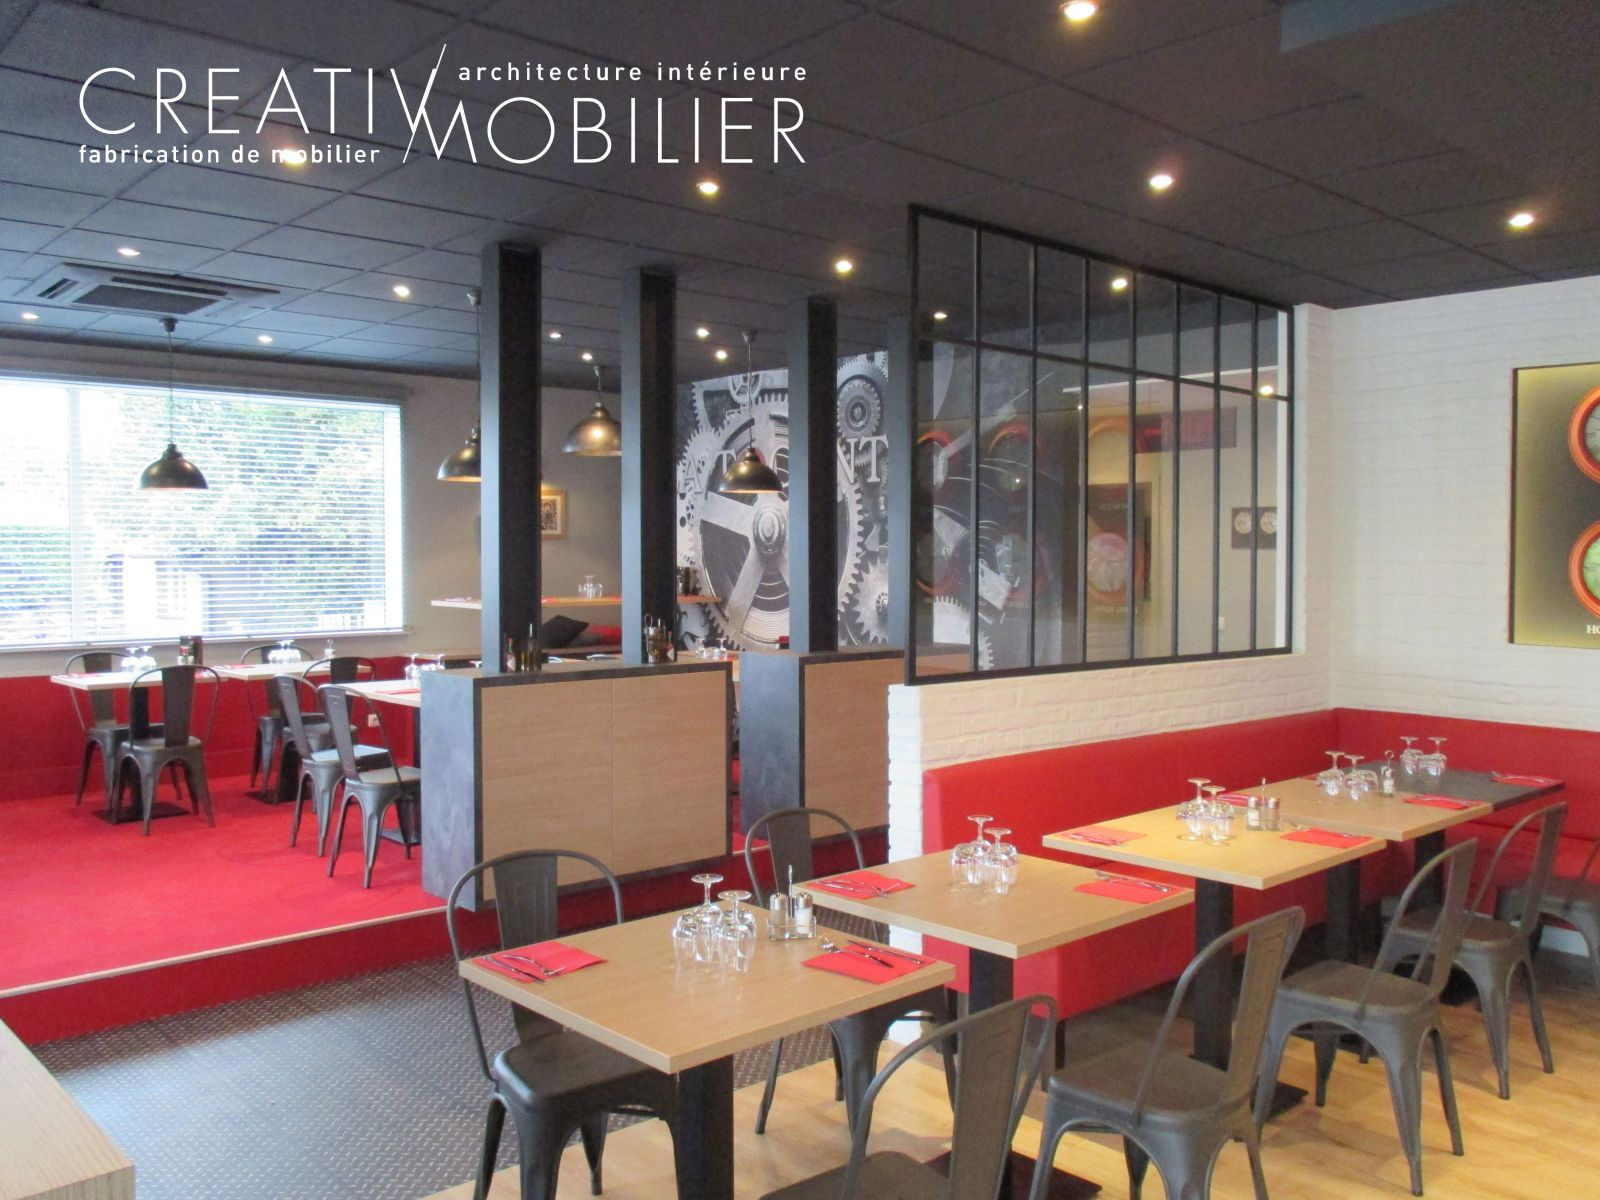 Angers restaurant agencement mobilier dcoration architecture